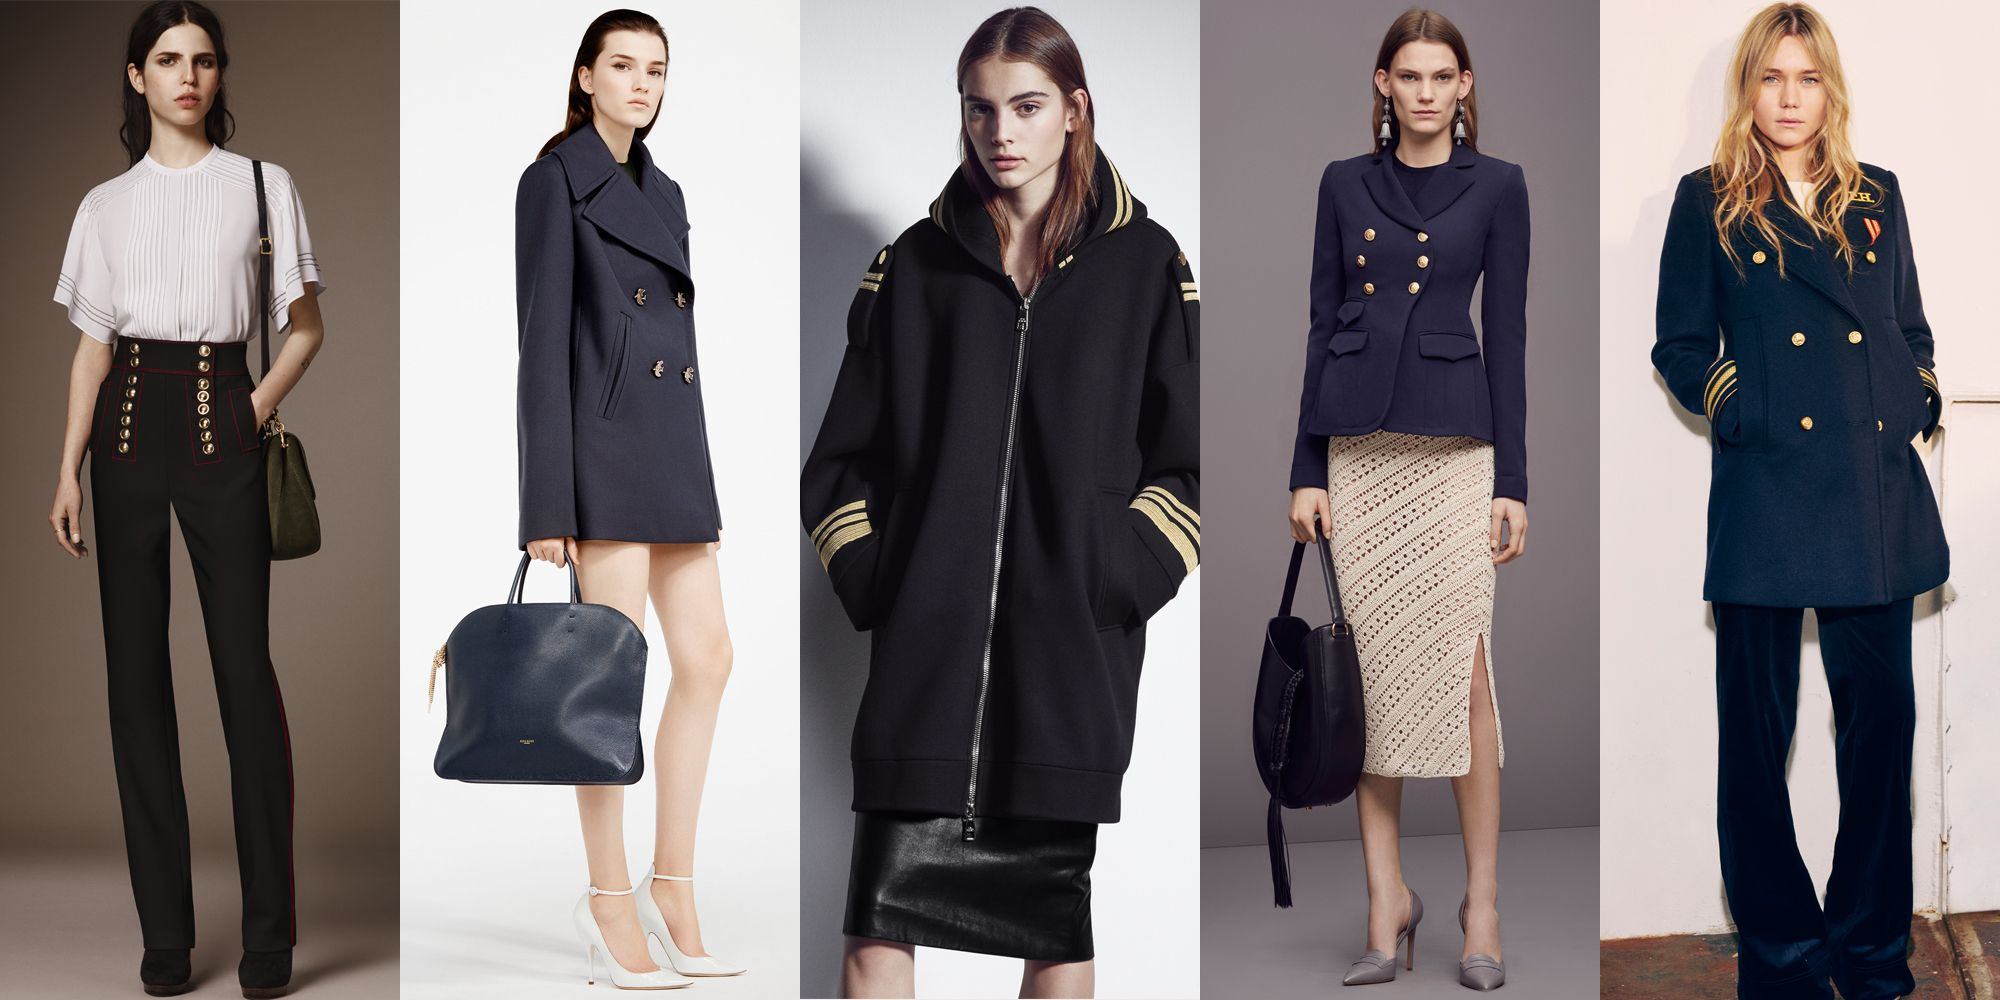 <p>We've seen army fatigues for the past few seasons, but this season, designers are turning toward a new military branch: the Navy. Pieces to invest in: sailor pants and double breasted coats. </p><p><br></p><p><em>Left to Right: Burberry, Nina Ricci, Neil Barrett, Altuzarra, Tommy Hilfiger</em></p>